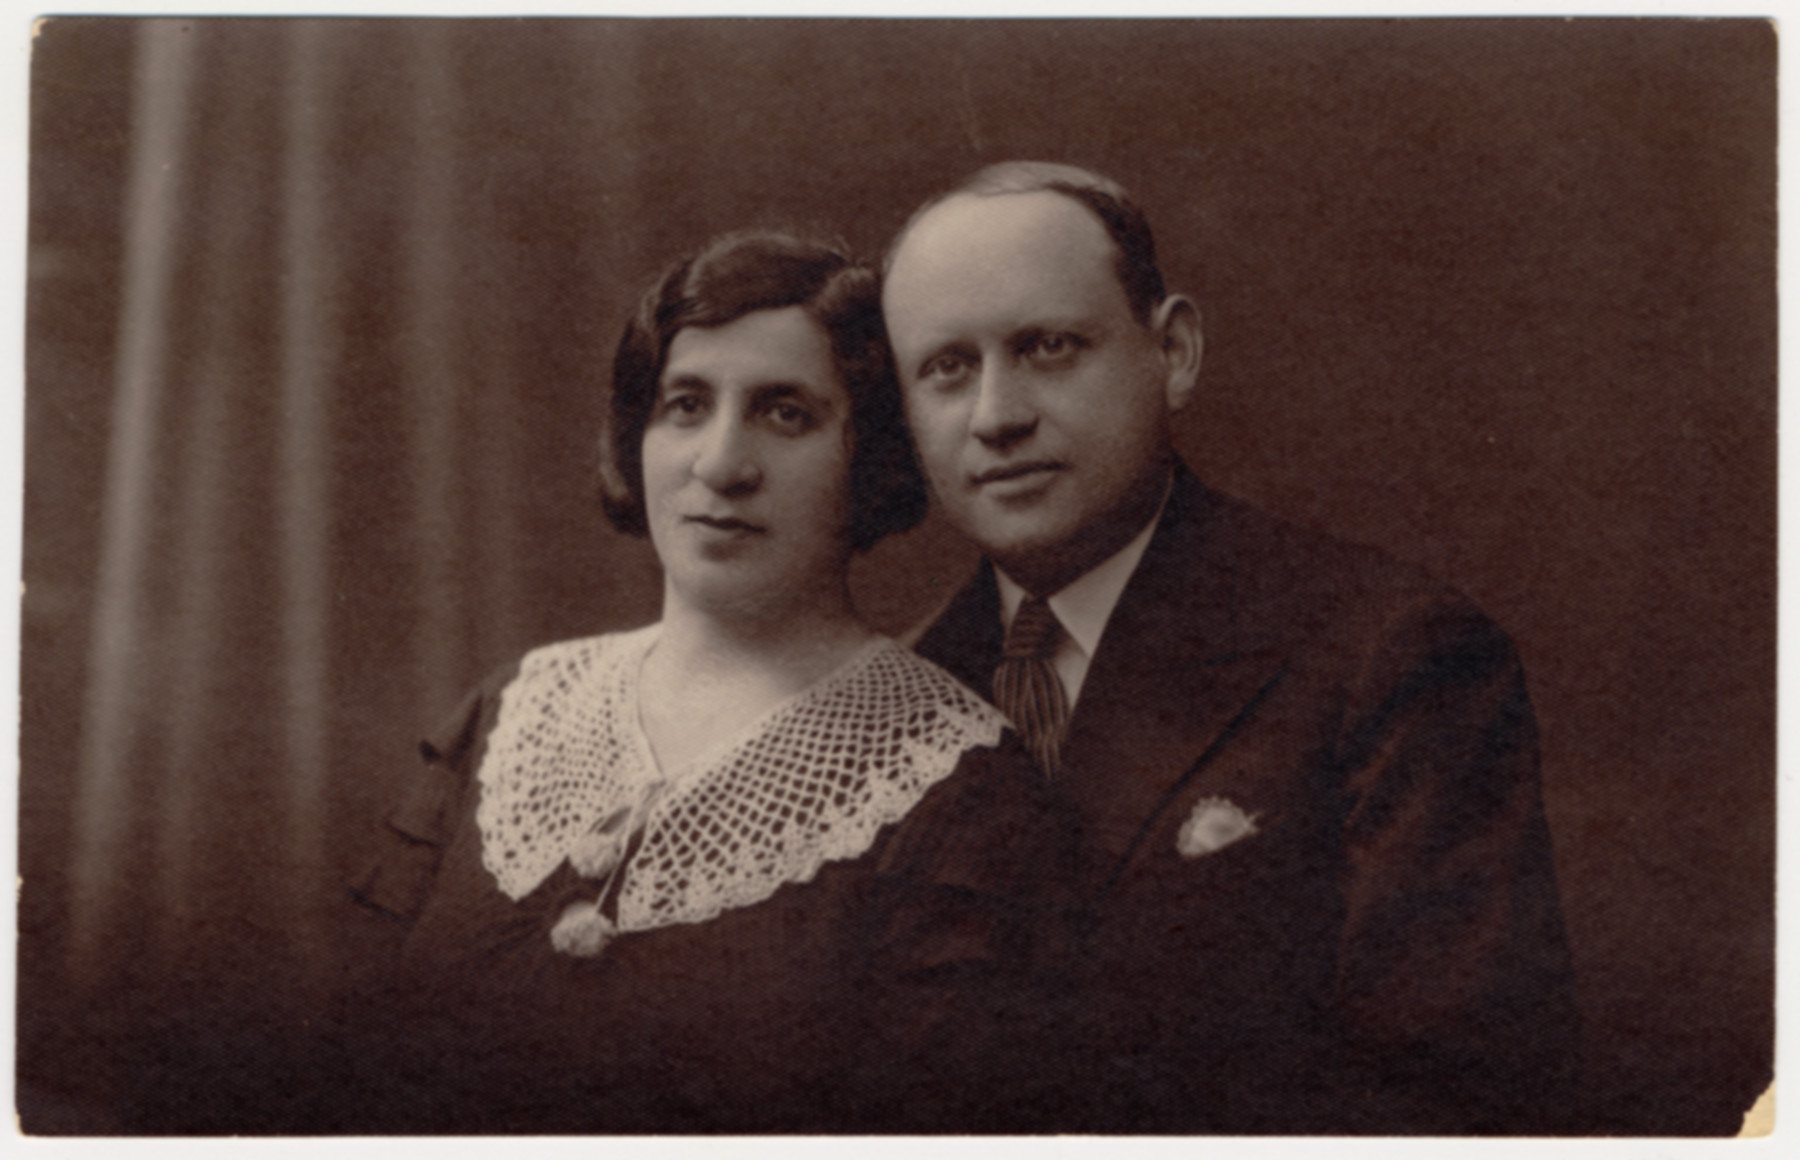 Prewar studio portrait of a Polish Jewish couple who later perished in the Holocaust.  Pictured are Gruna nee Suchowolsky and her husband Yossel.